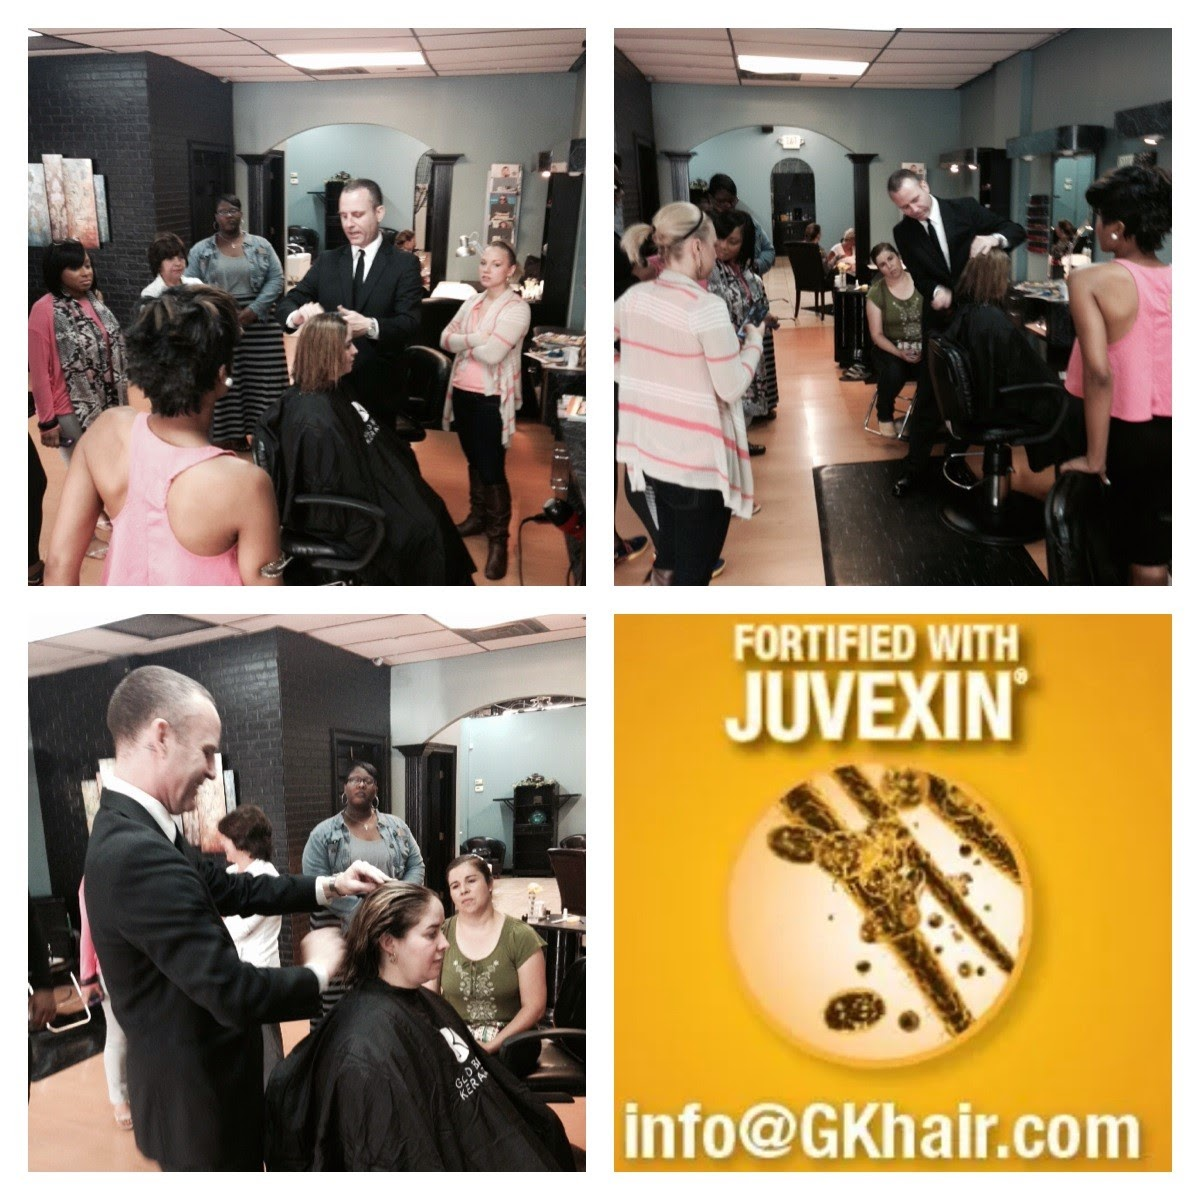 Salon 1580 is a Featured GKhair Salon